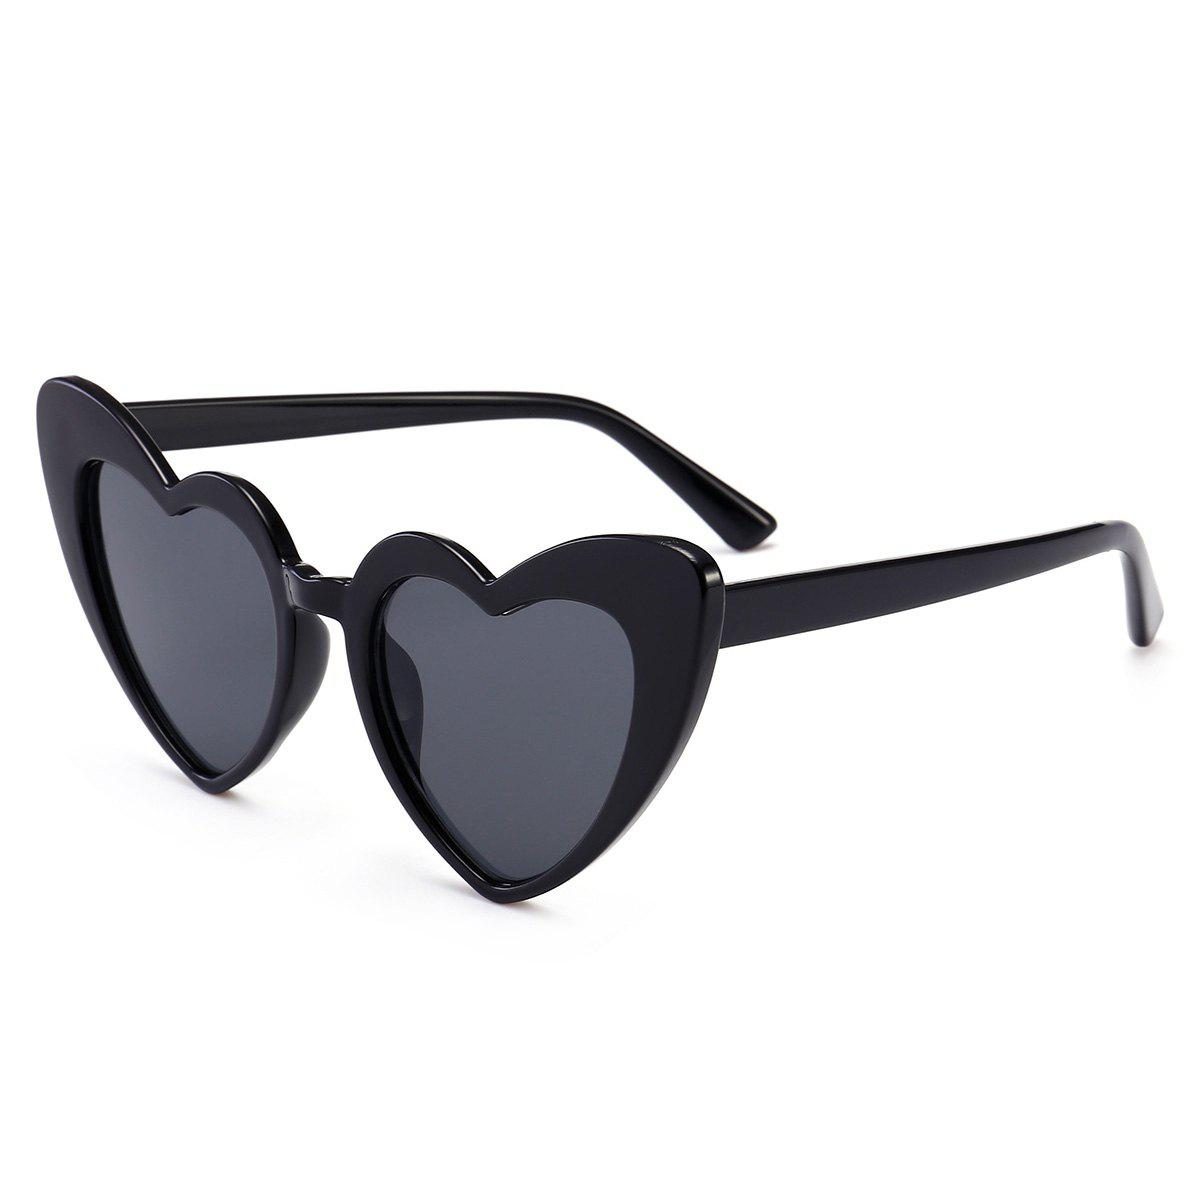 New Full Frame Heart Shape Sunglasses